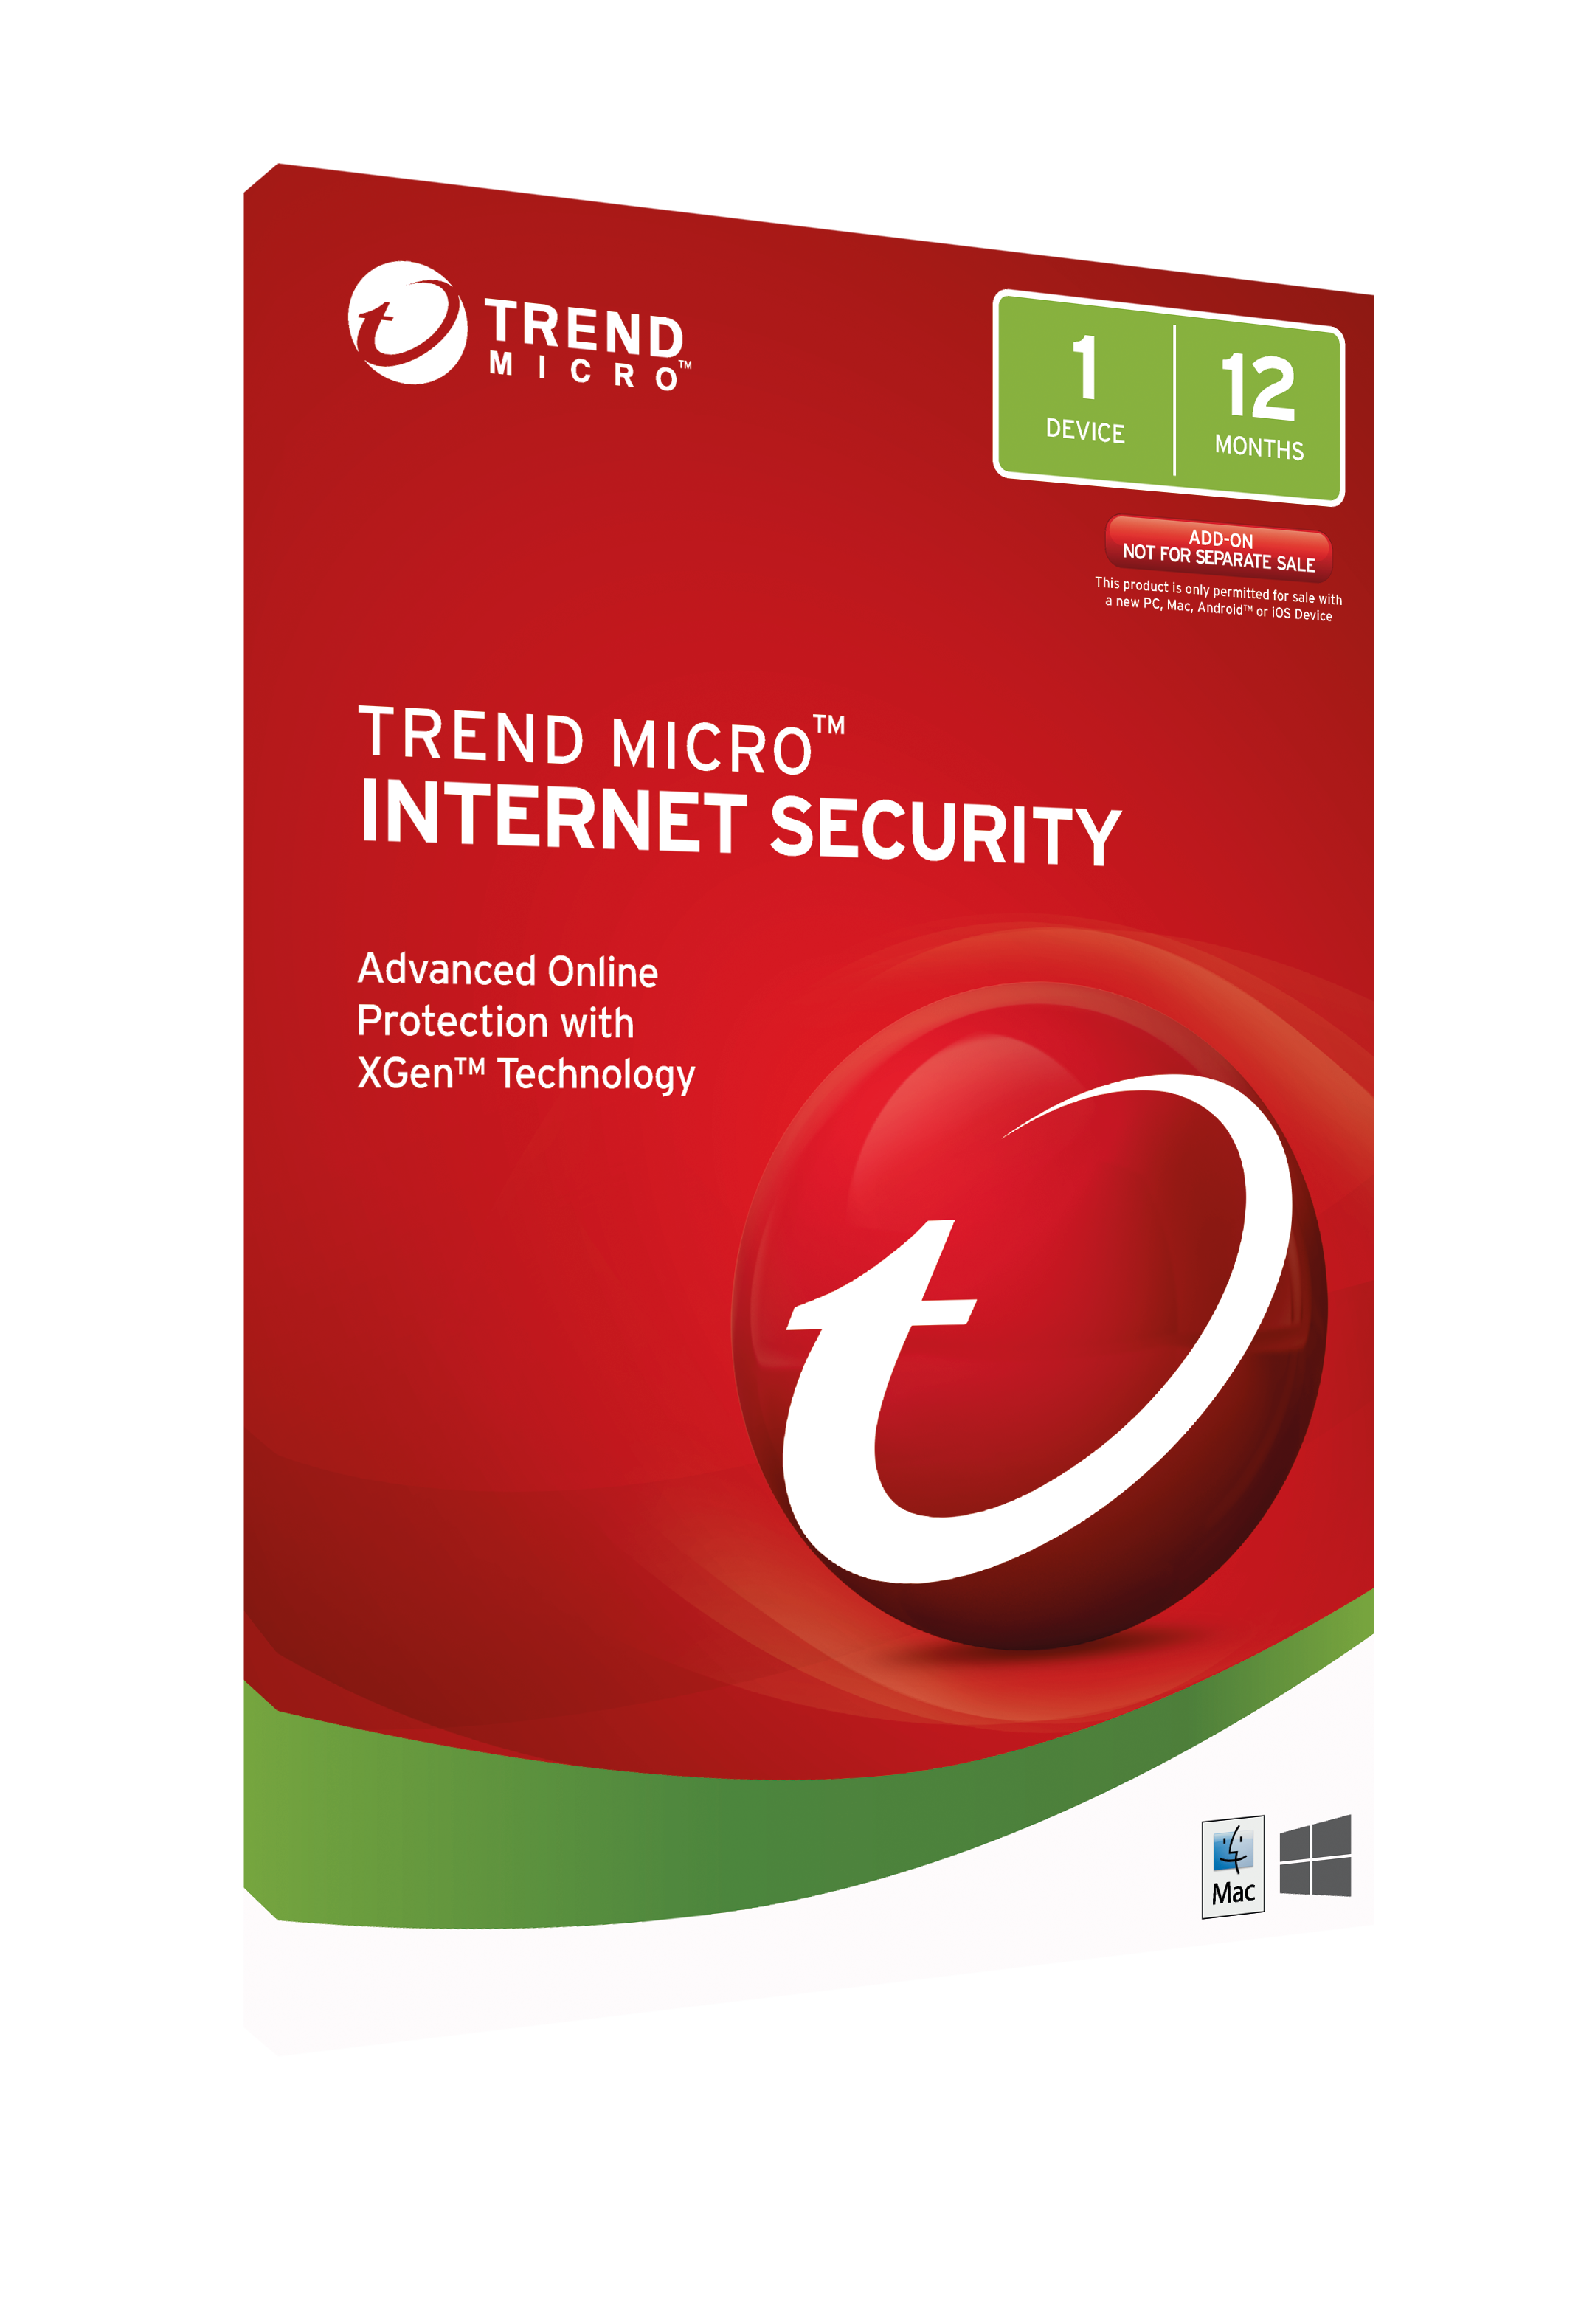 internet security trends 5 information security trends that will dominate 2016 cybercriminals are becoming more sophisticated and collaborative with every coming year to combat the threat in 2016, information security.